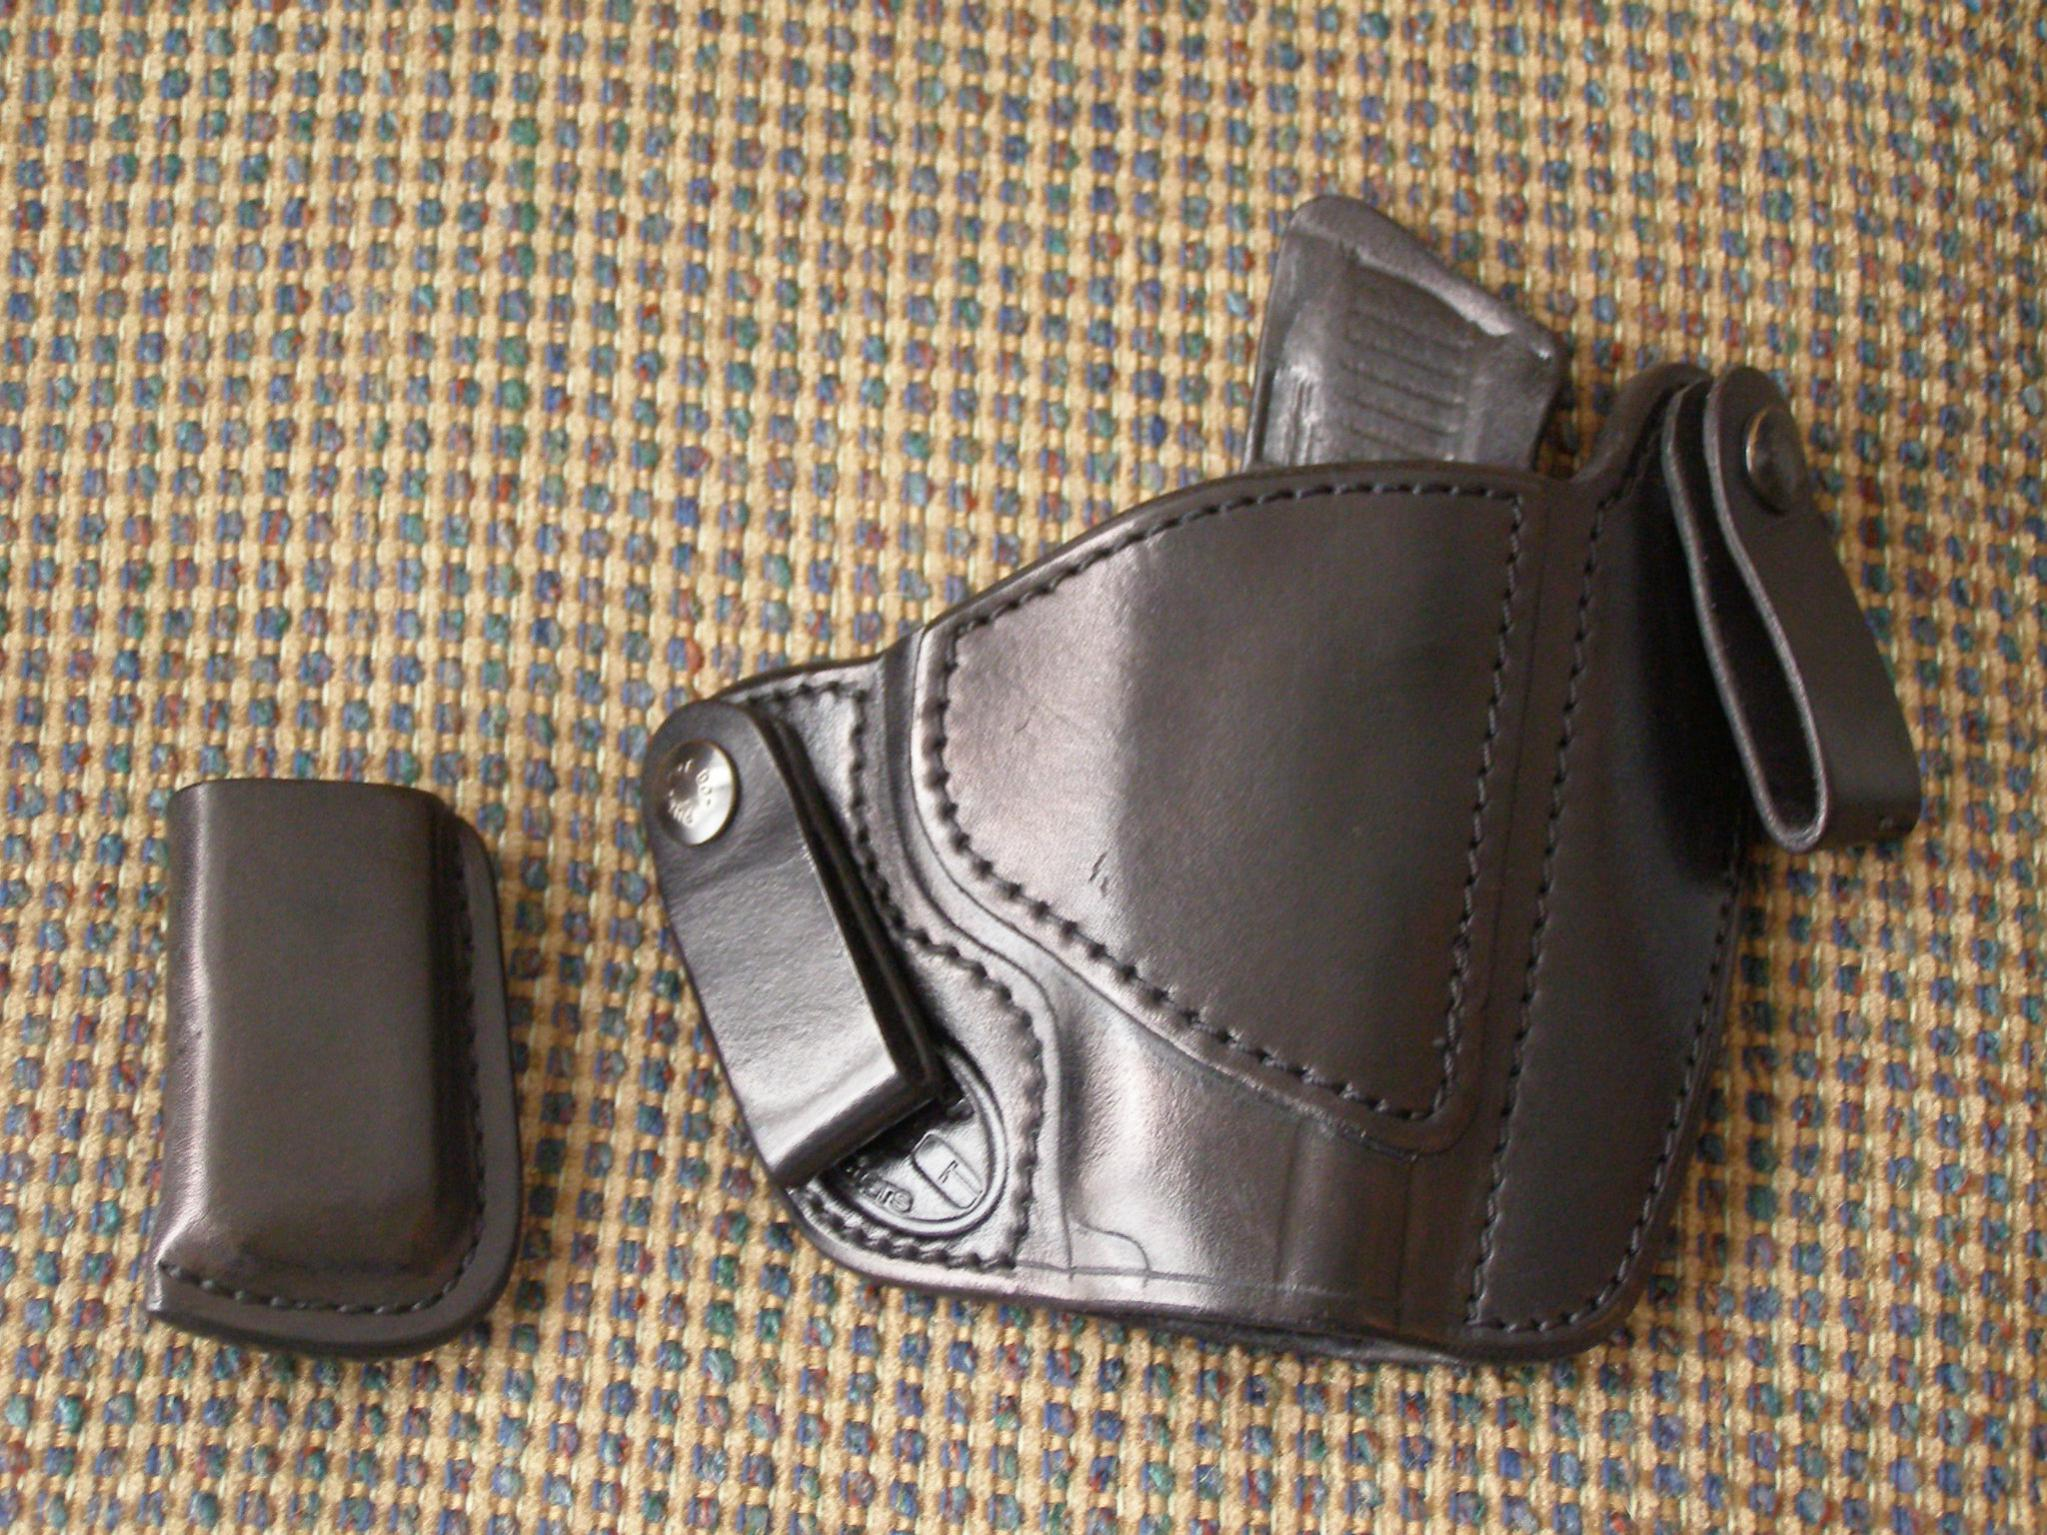 WTS: UBG Canute IWB holster for Sig P239: SC-p4060001.jpg